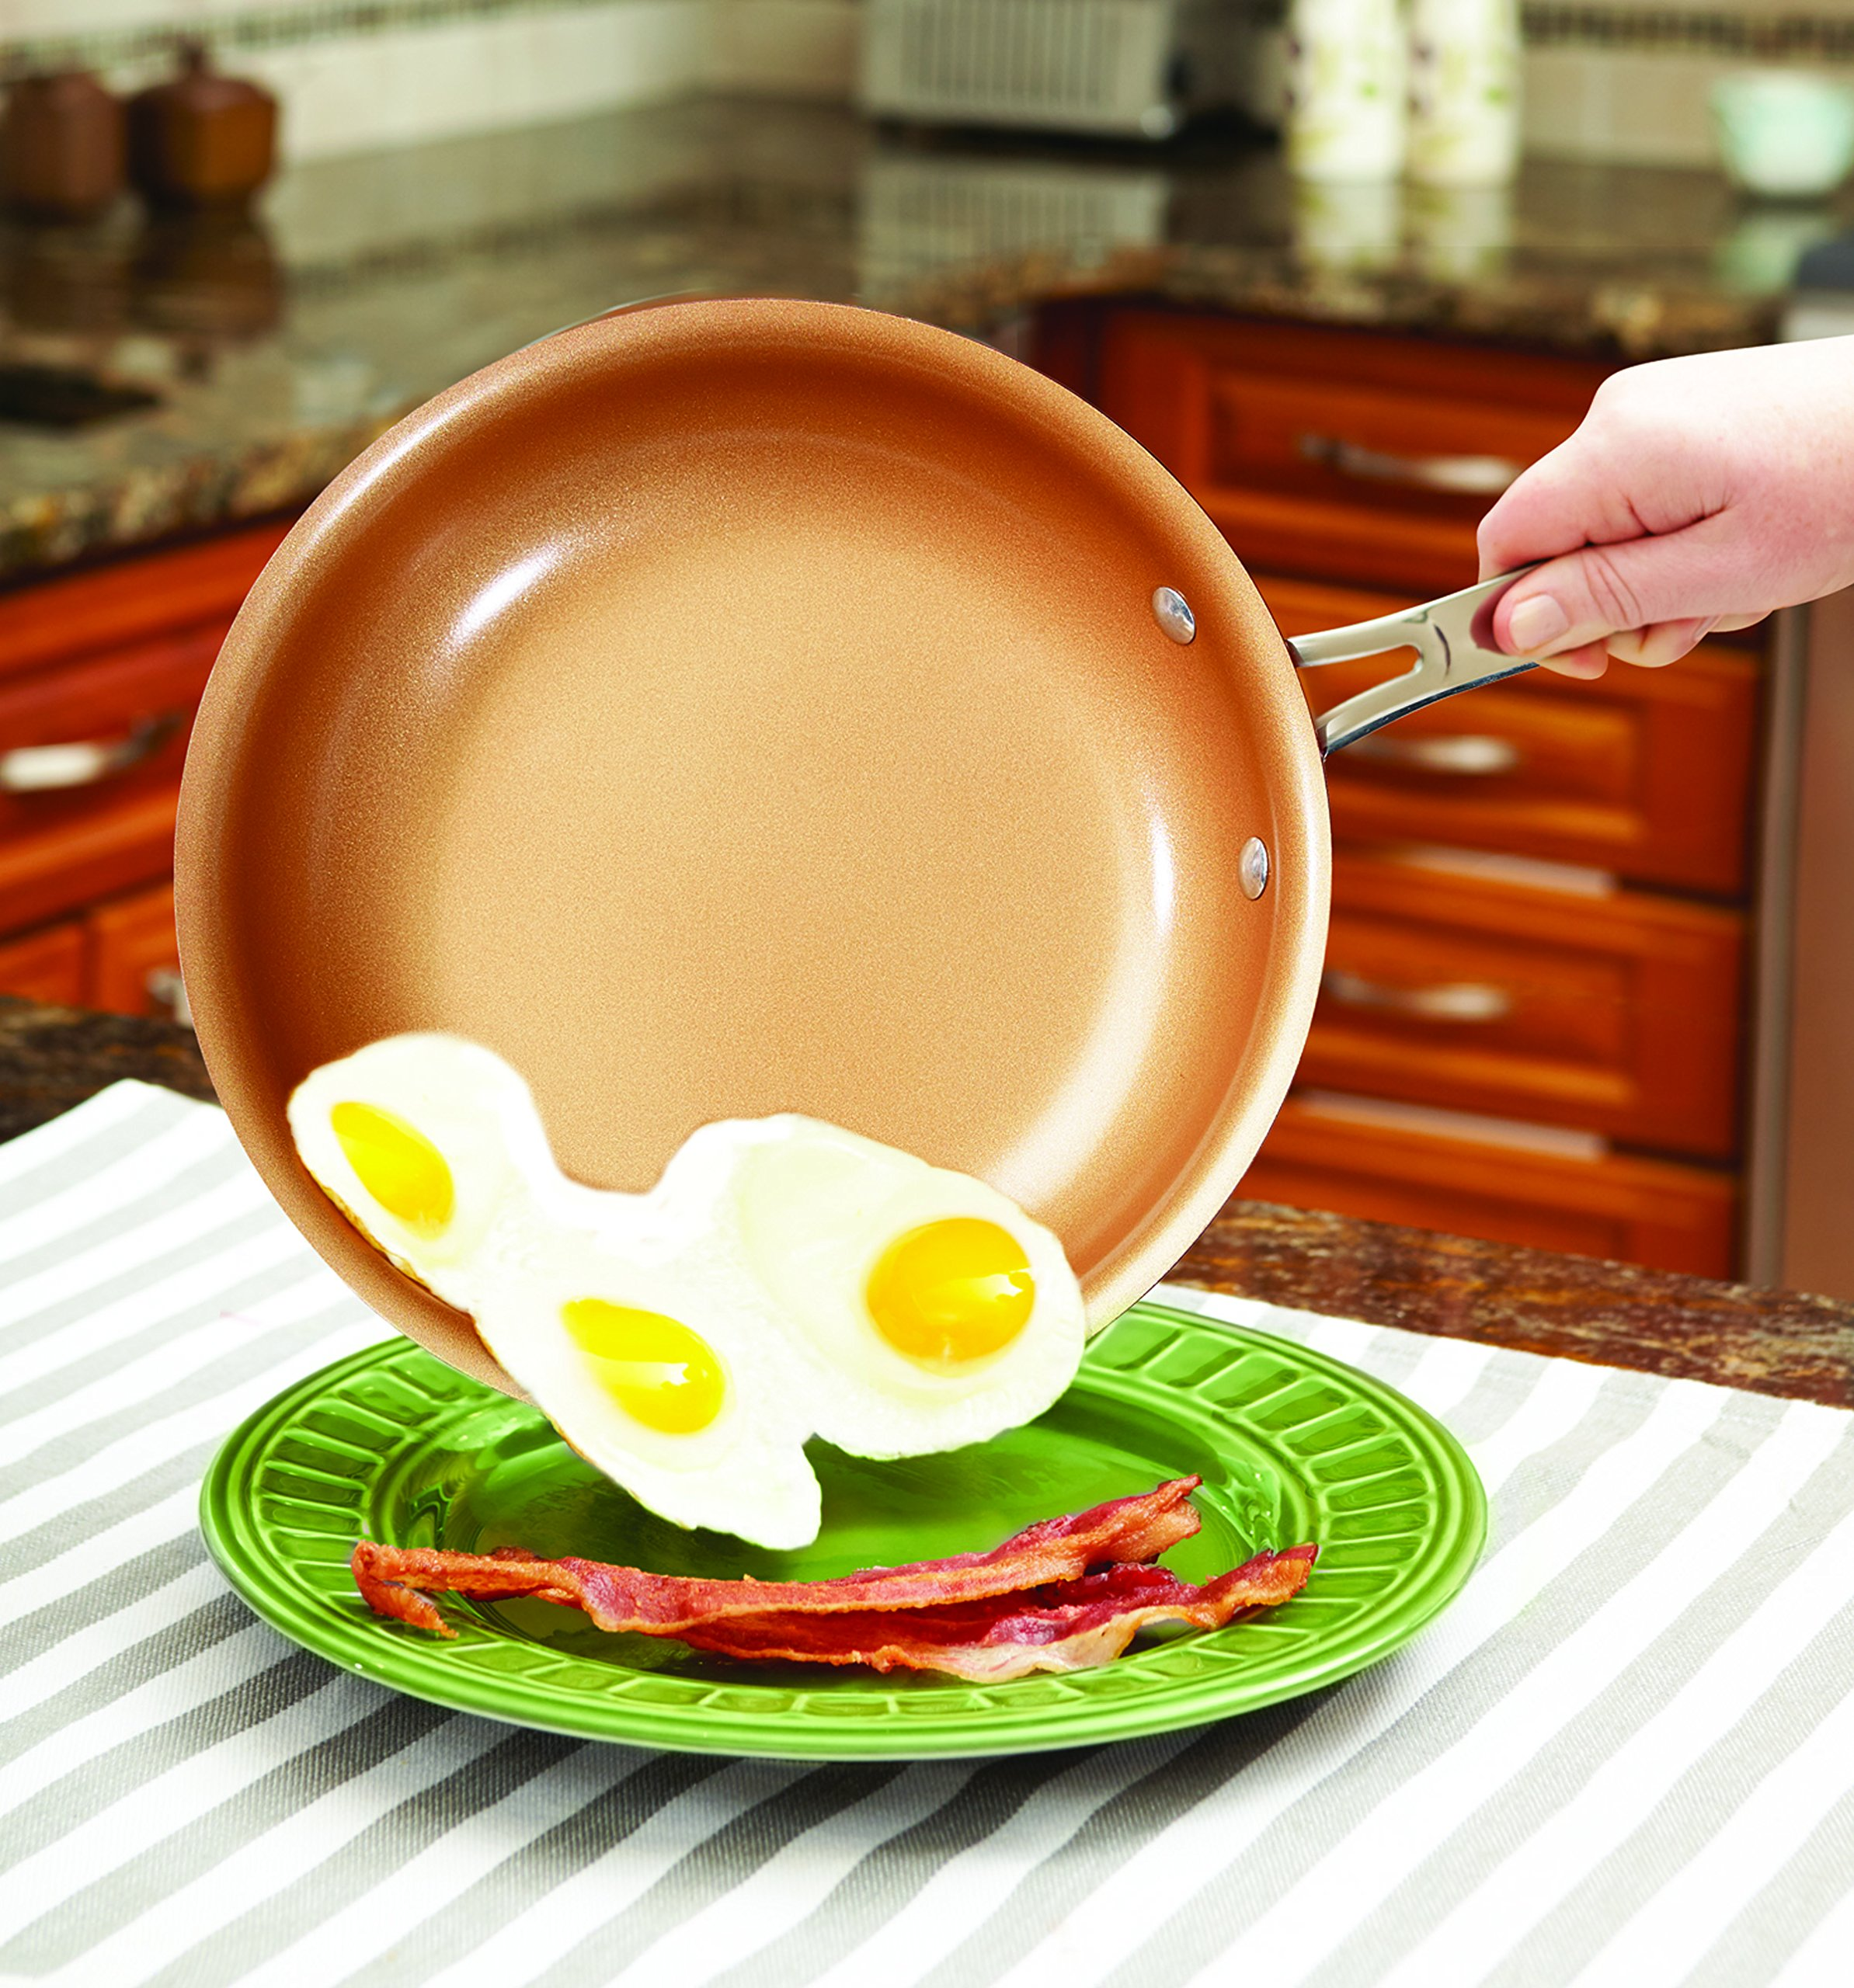 Red Copper 10 PC Copper-Infused Ceramic Non-Stick Cookware Set by BulbHead by BulbHead (Image #4)